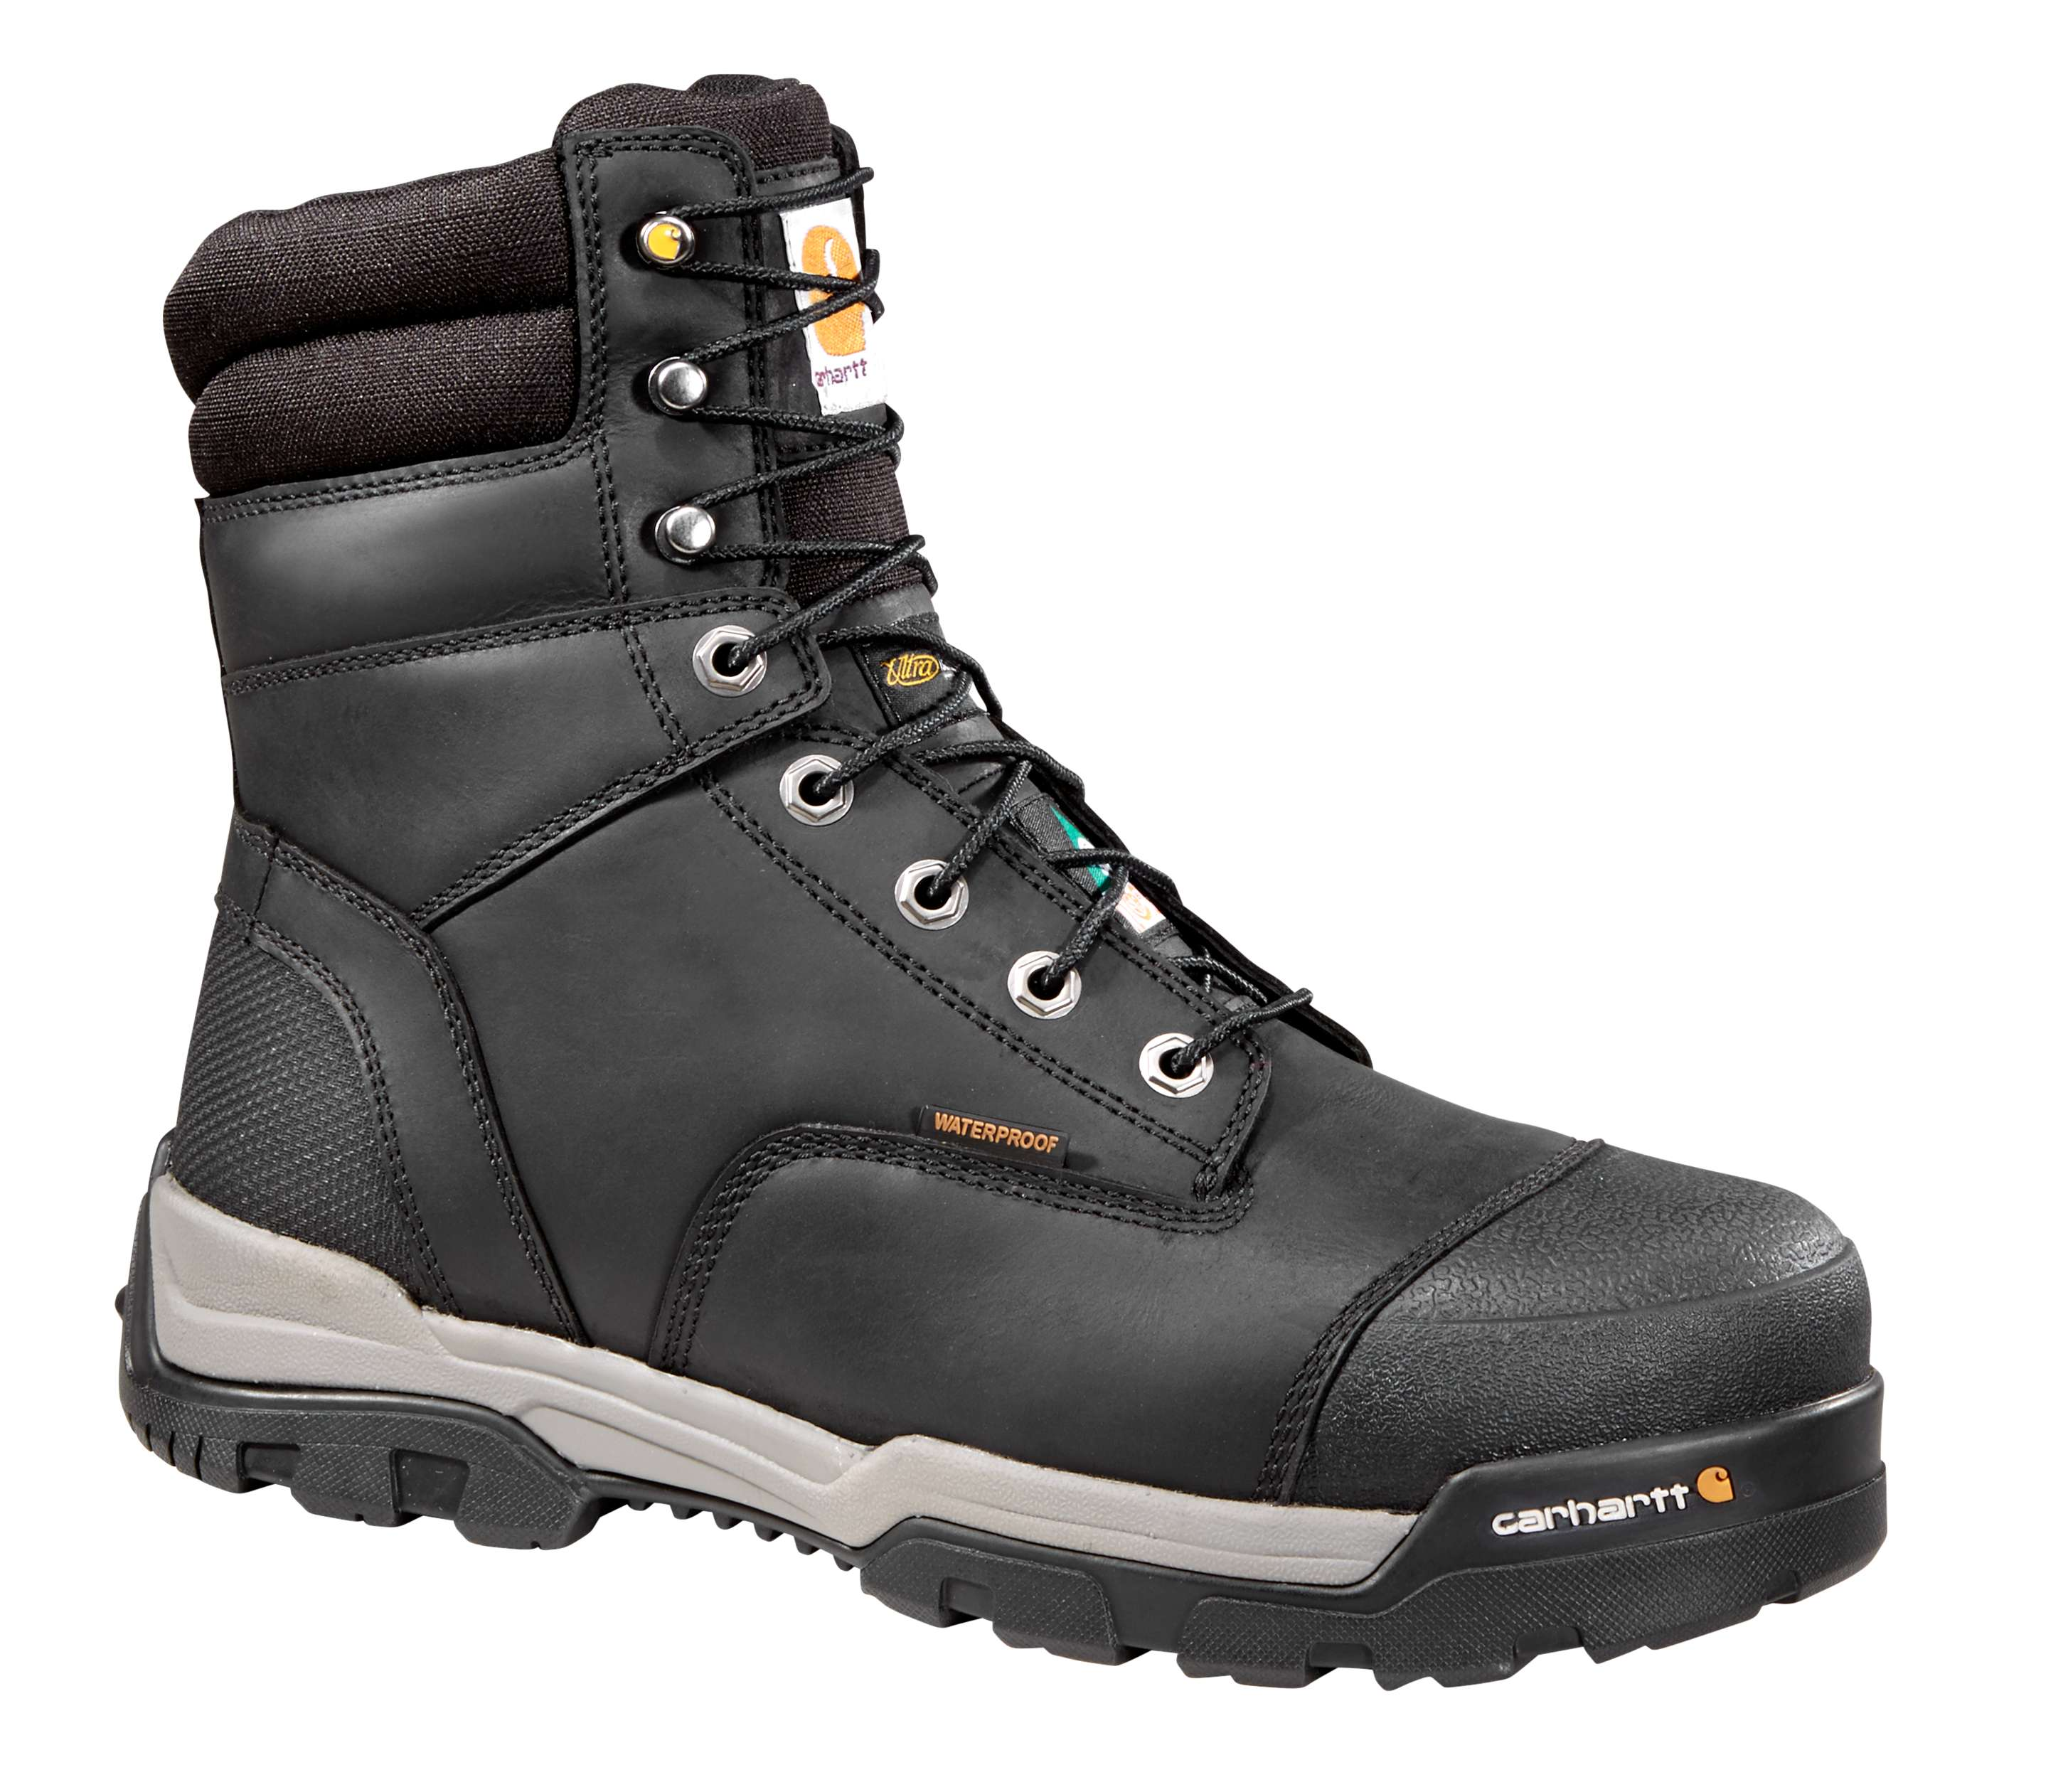 Carhartt Ground Force 8-Inch Insulated Composite Toe CSA Work Boot